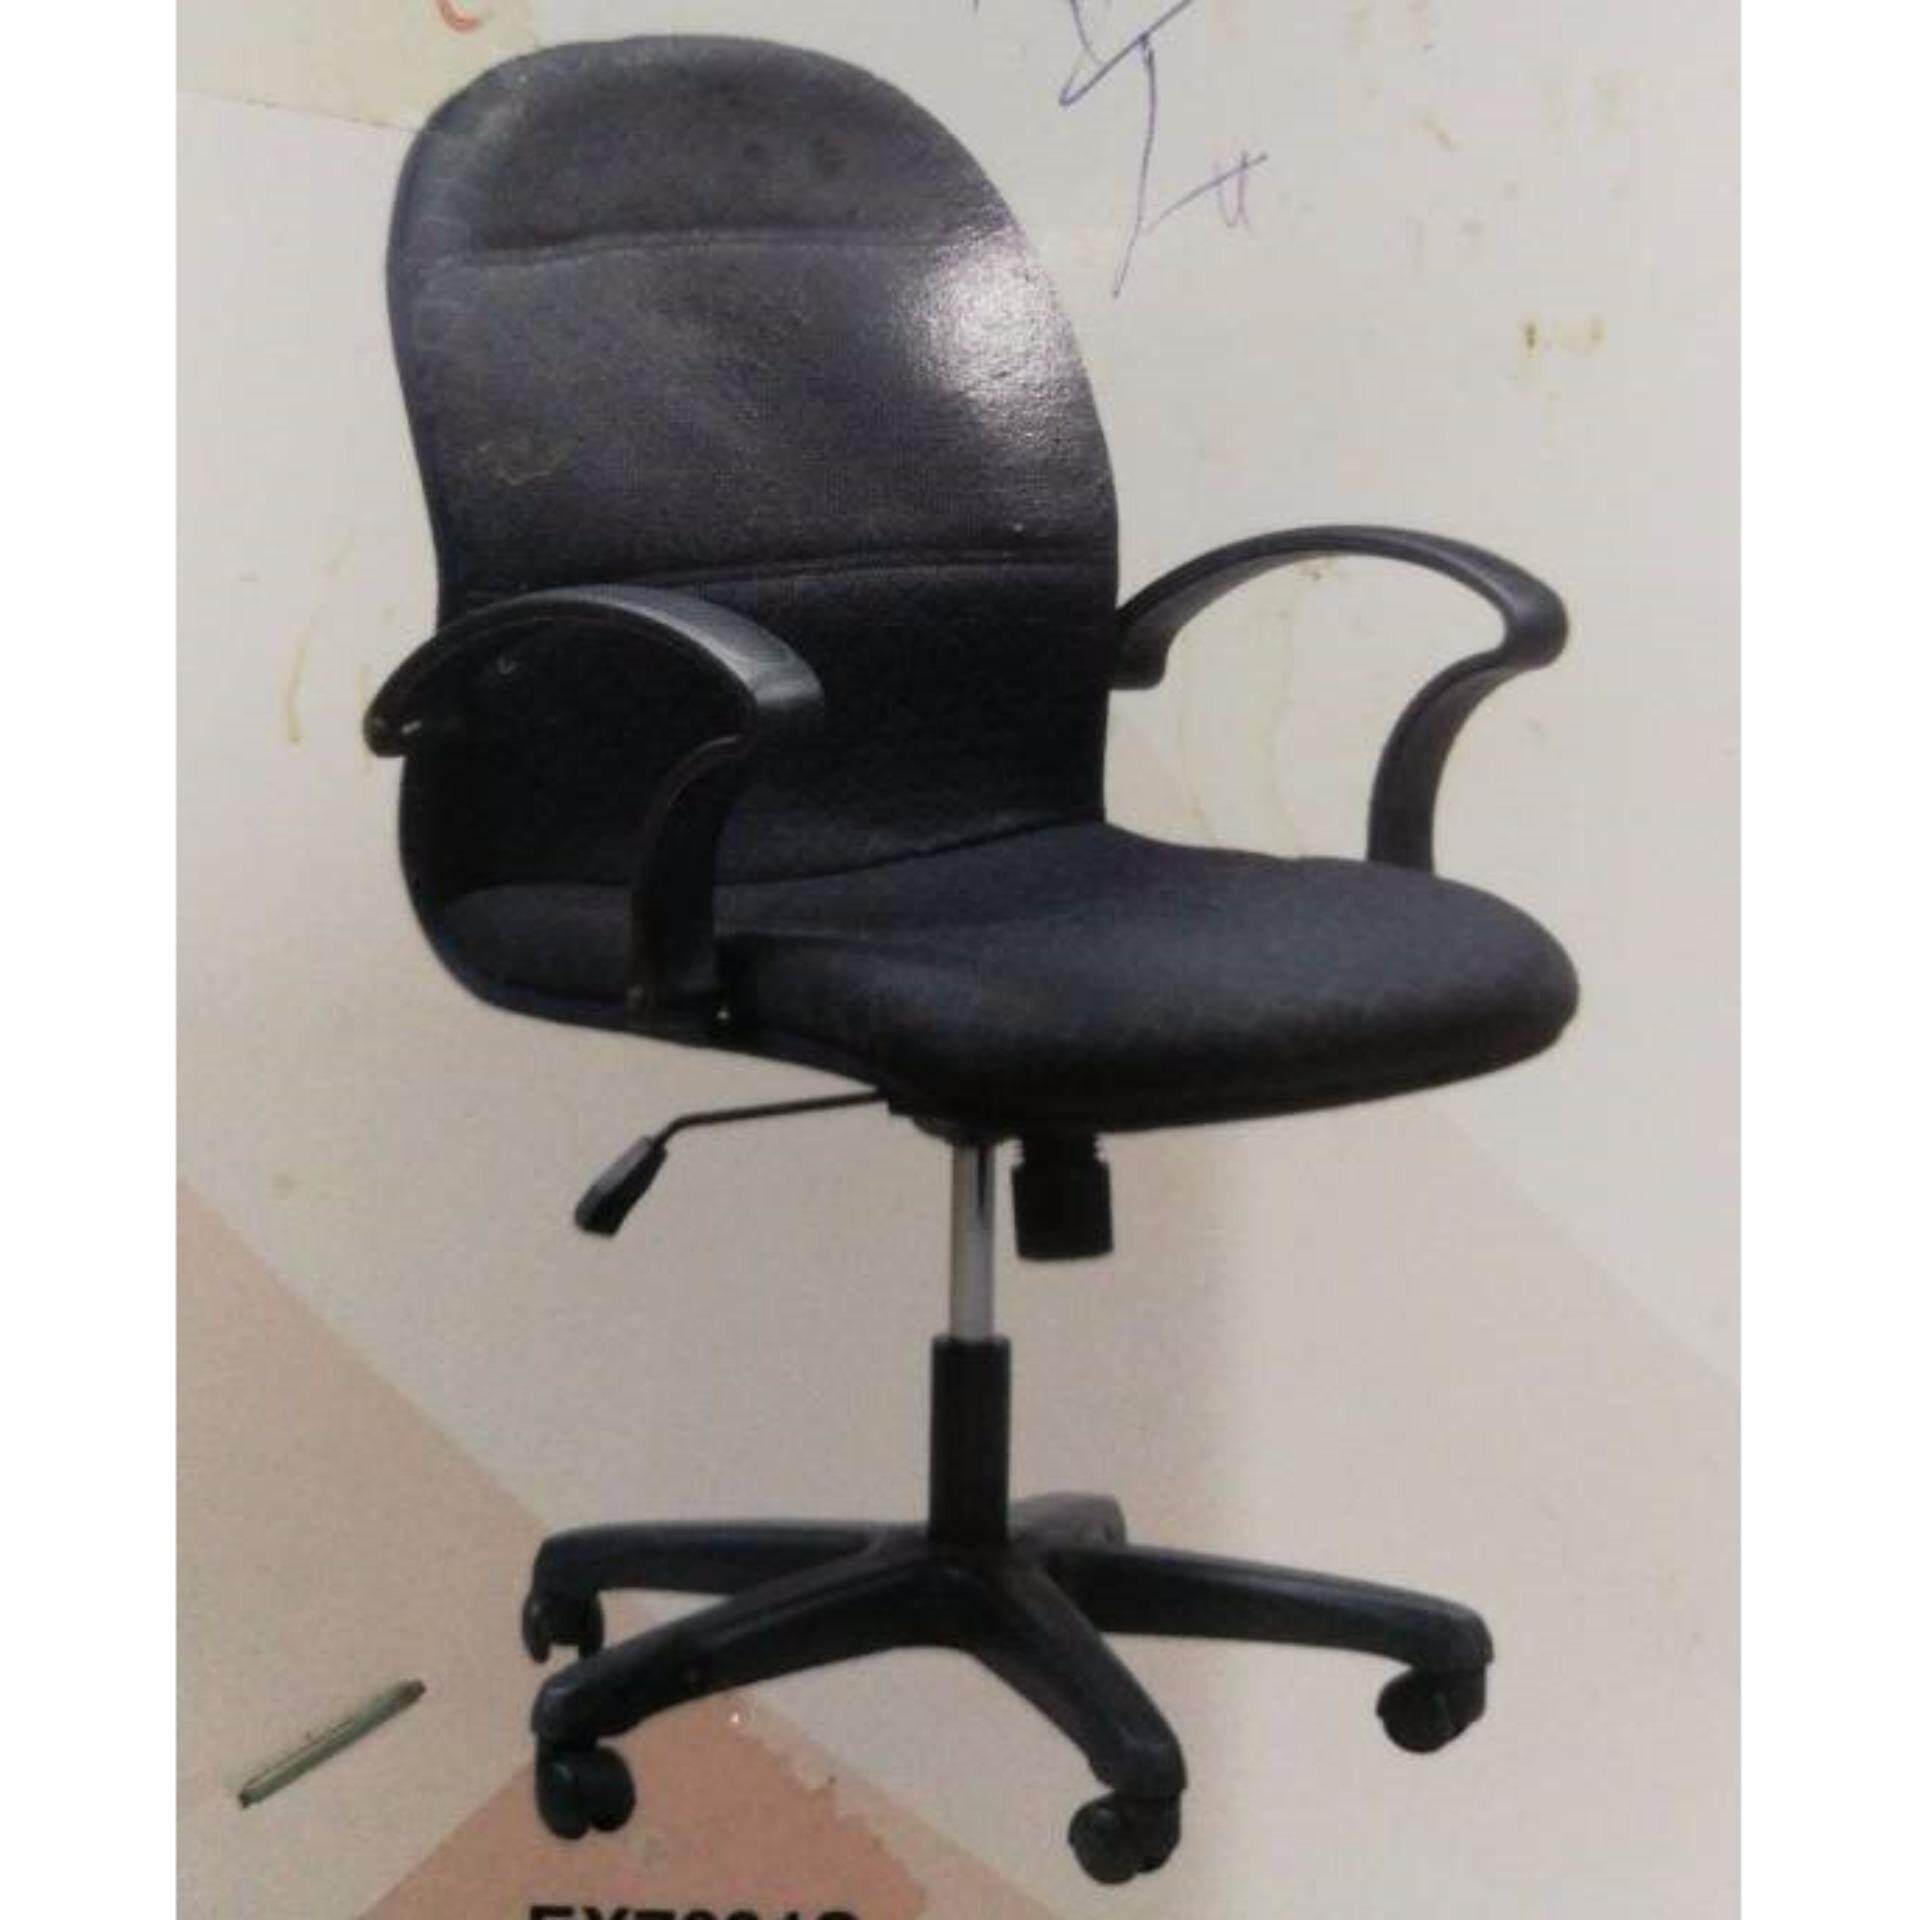 office chair malaysia fatboy bean bag chairs jfh 3v high back executive